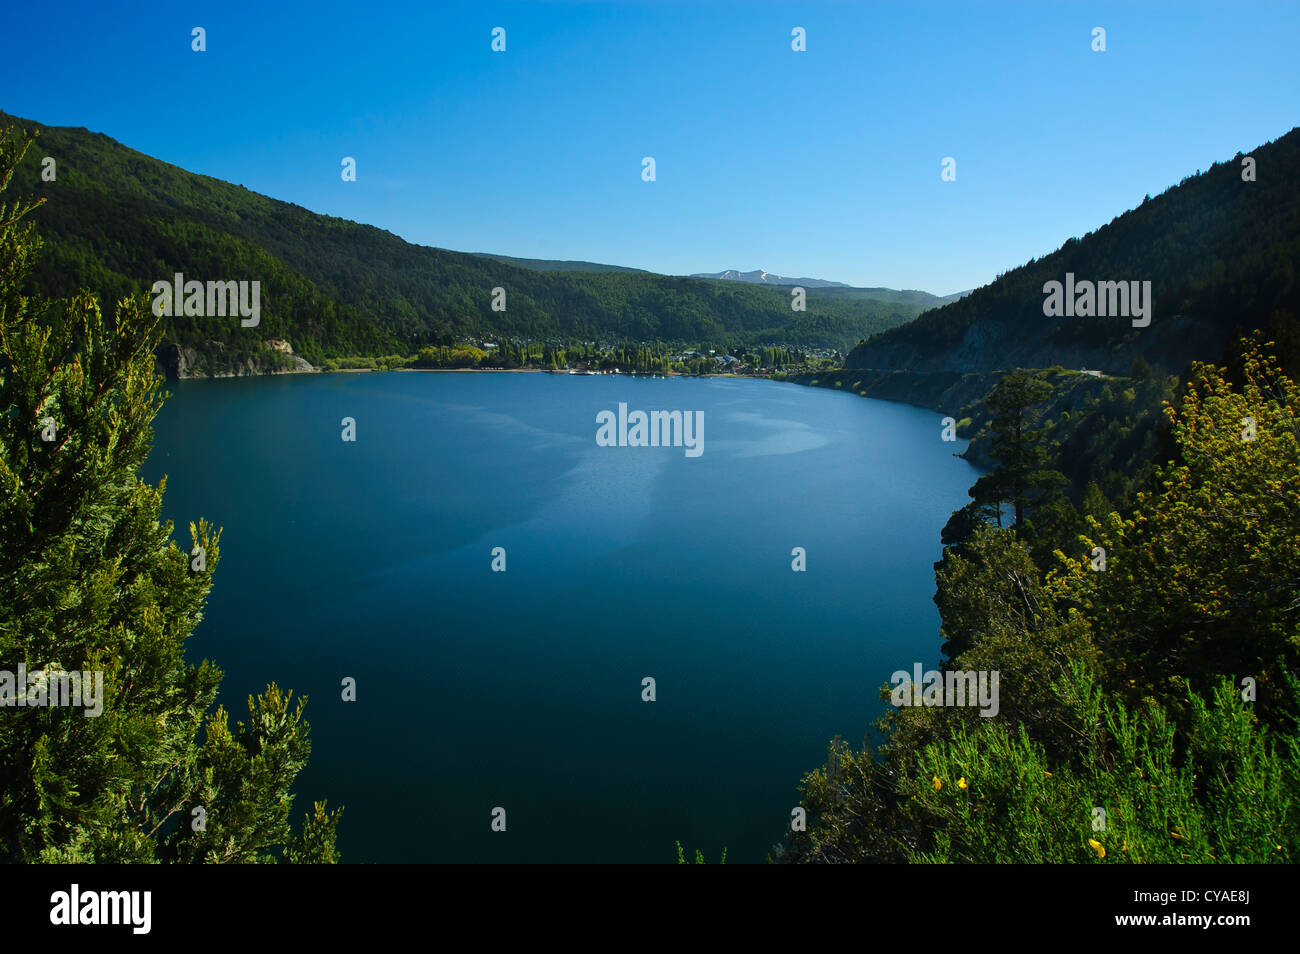 One of the 7 lakes of the Andes close to San Martin de los Andes, Patagonia, Argentina - Stock Image